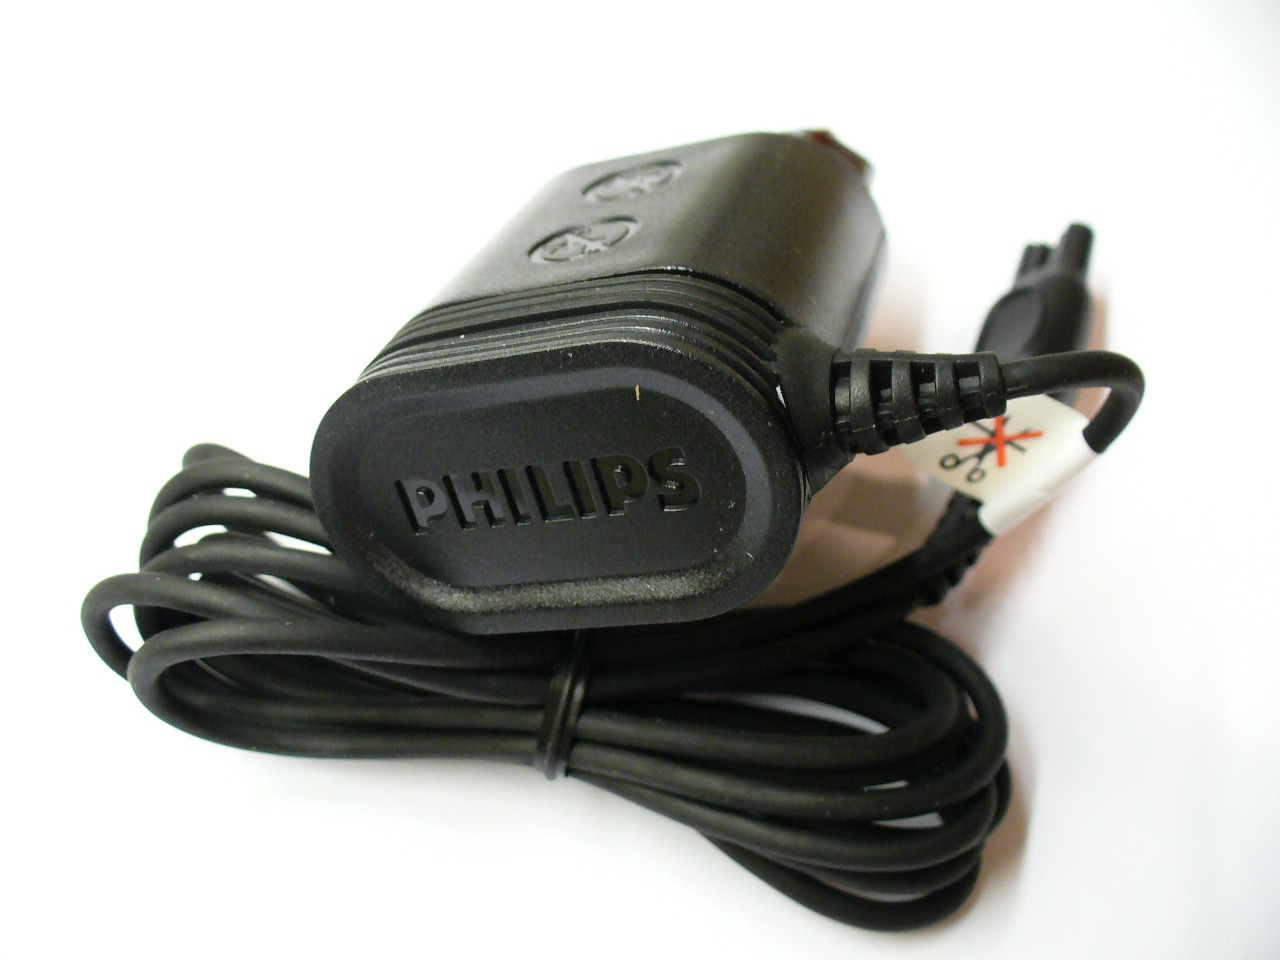 PHILIPS-SHAVER-CHARGER-SHOPELECTRONS-1.jpg